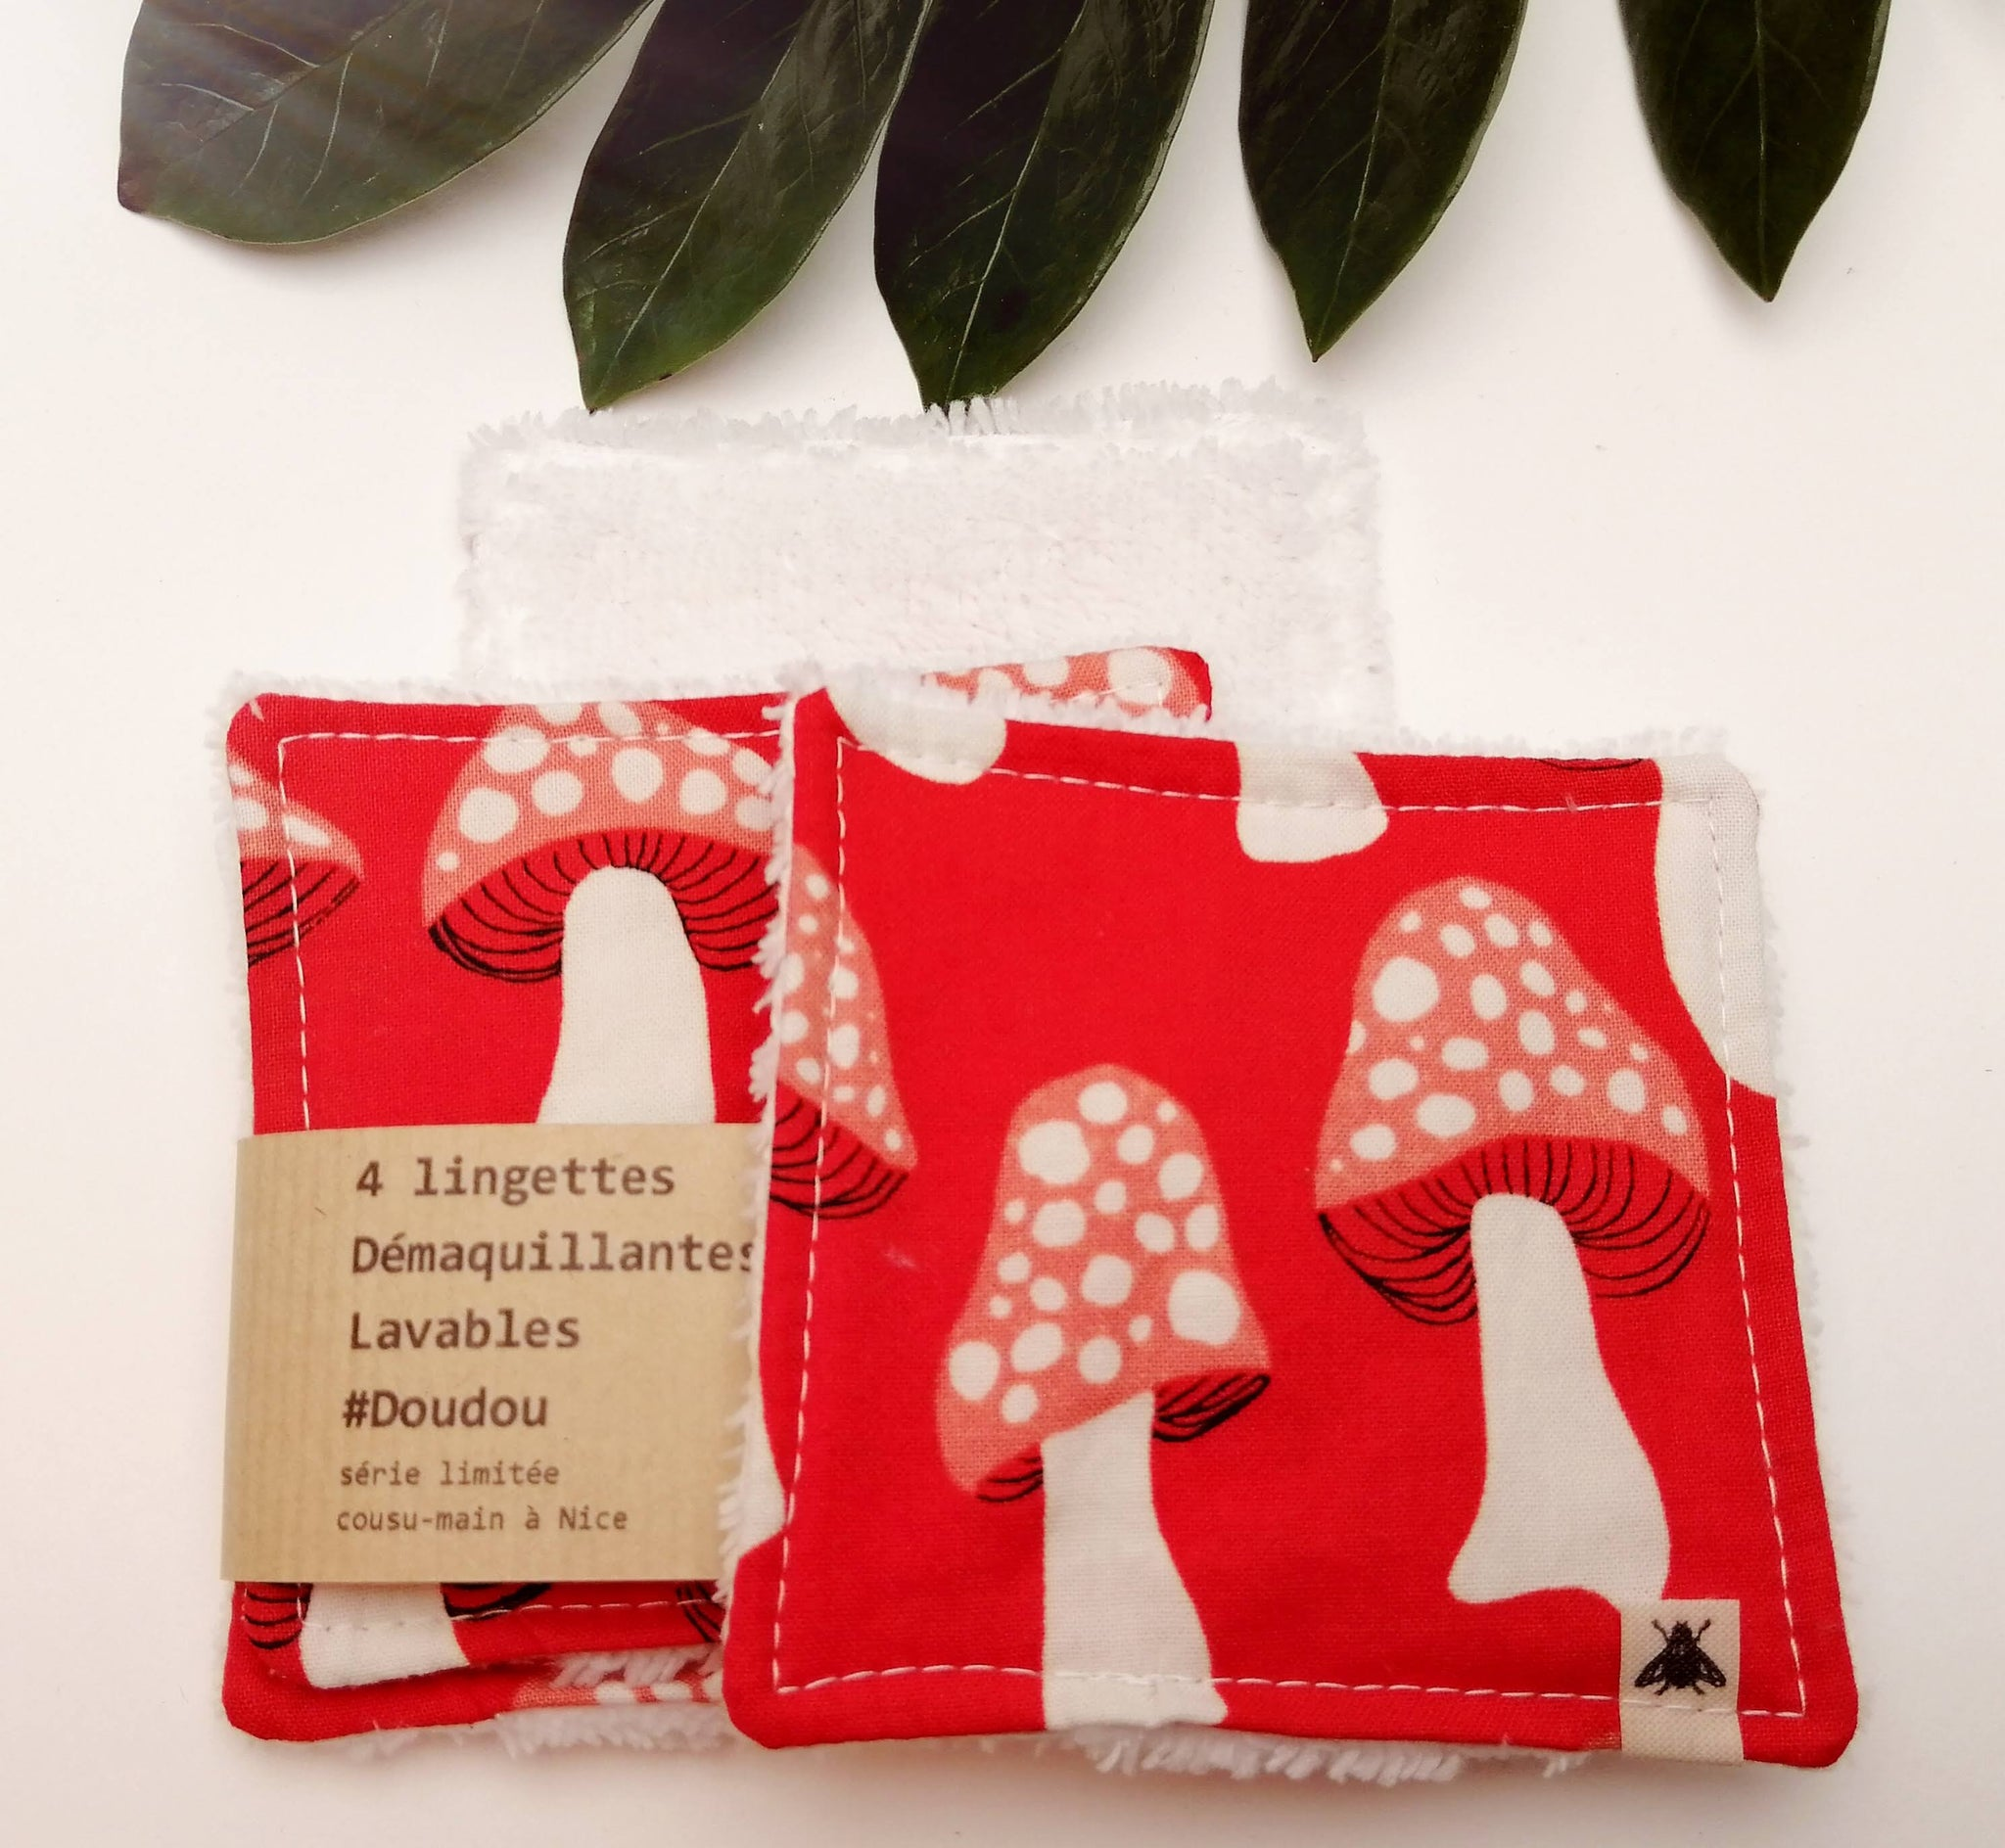 4 Lingettes démaquillantes lavables doudou - magic mush -